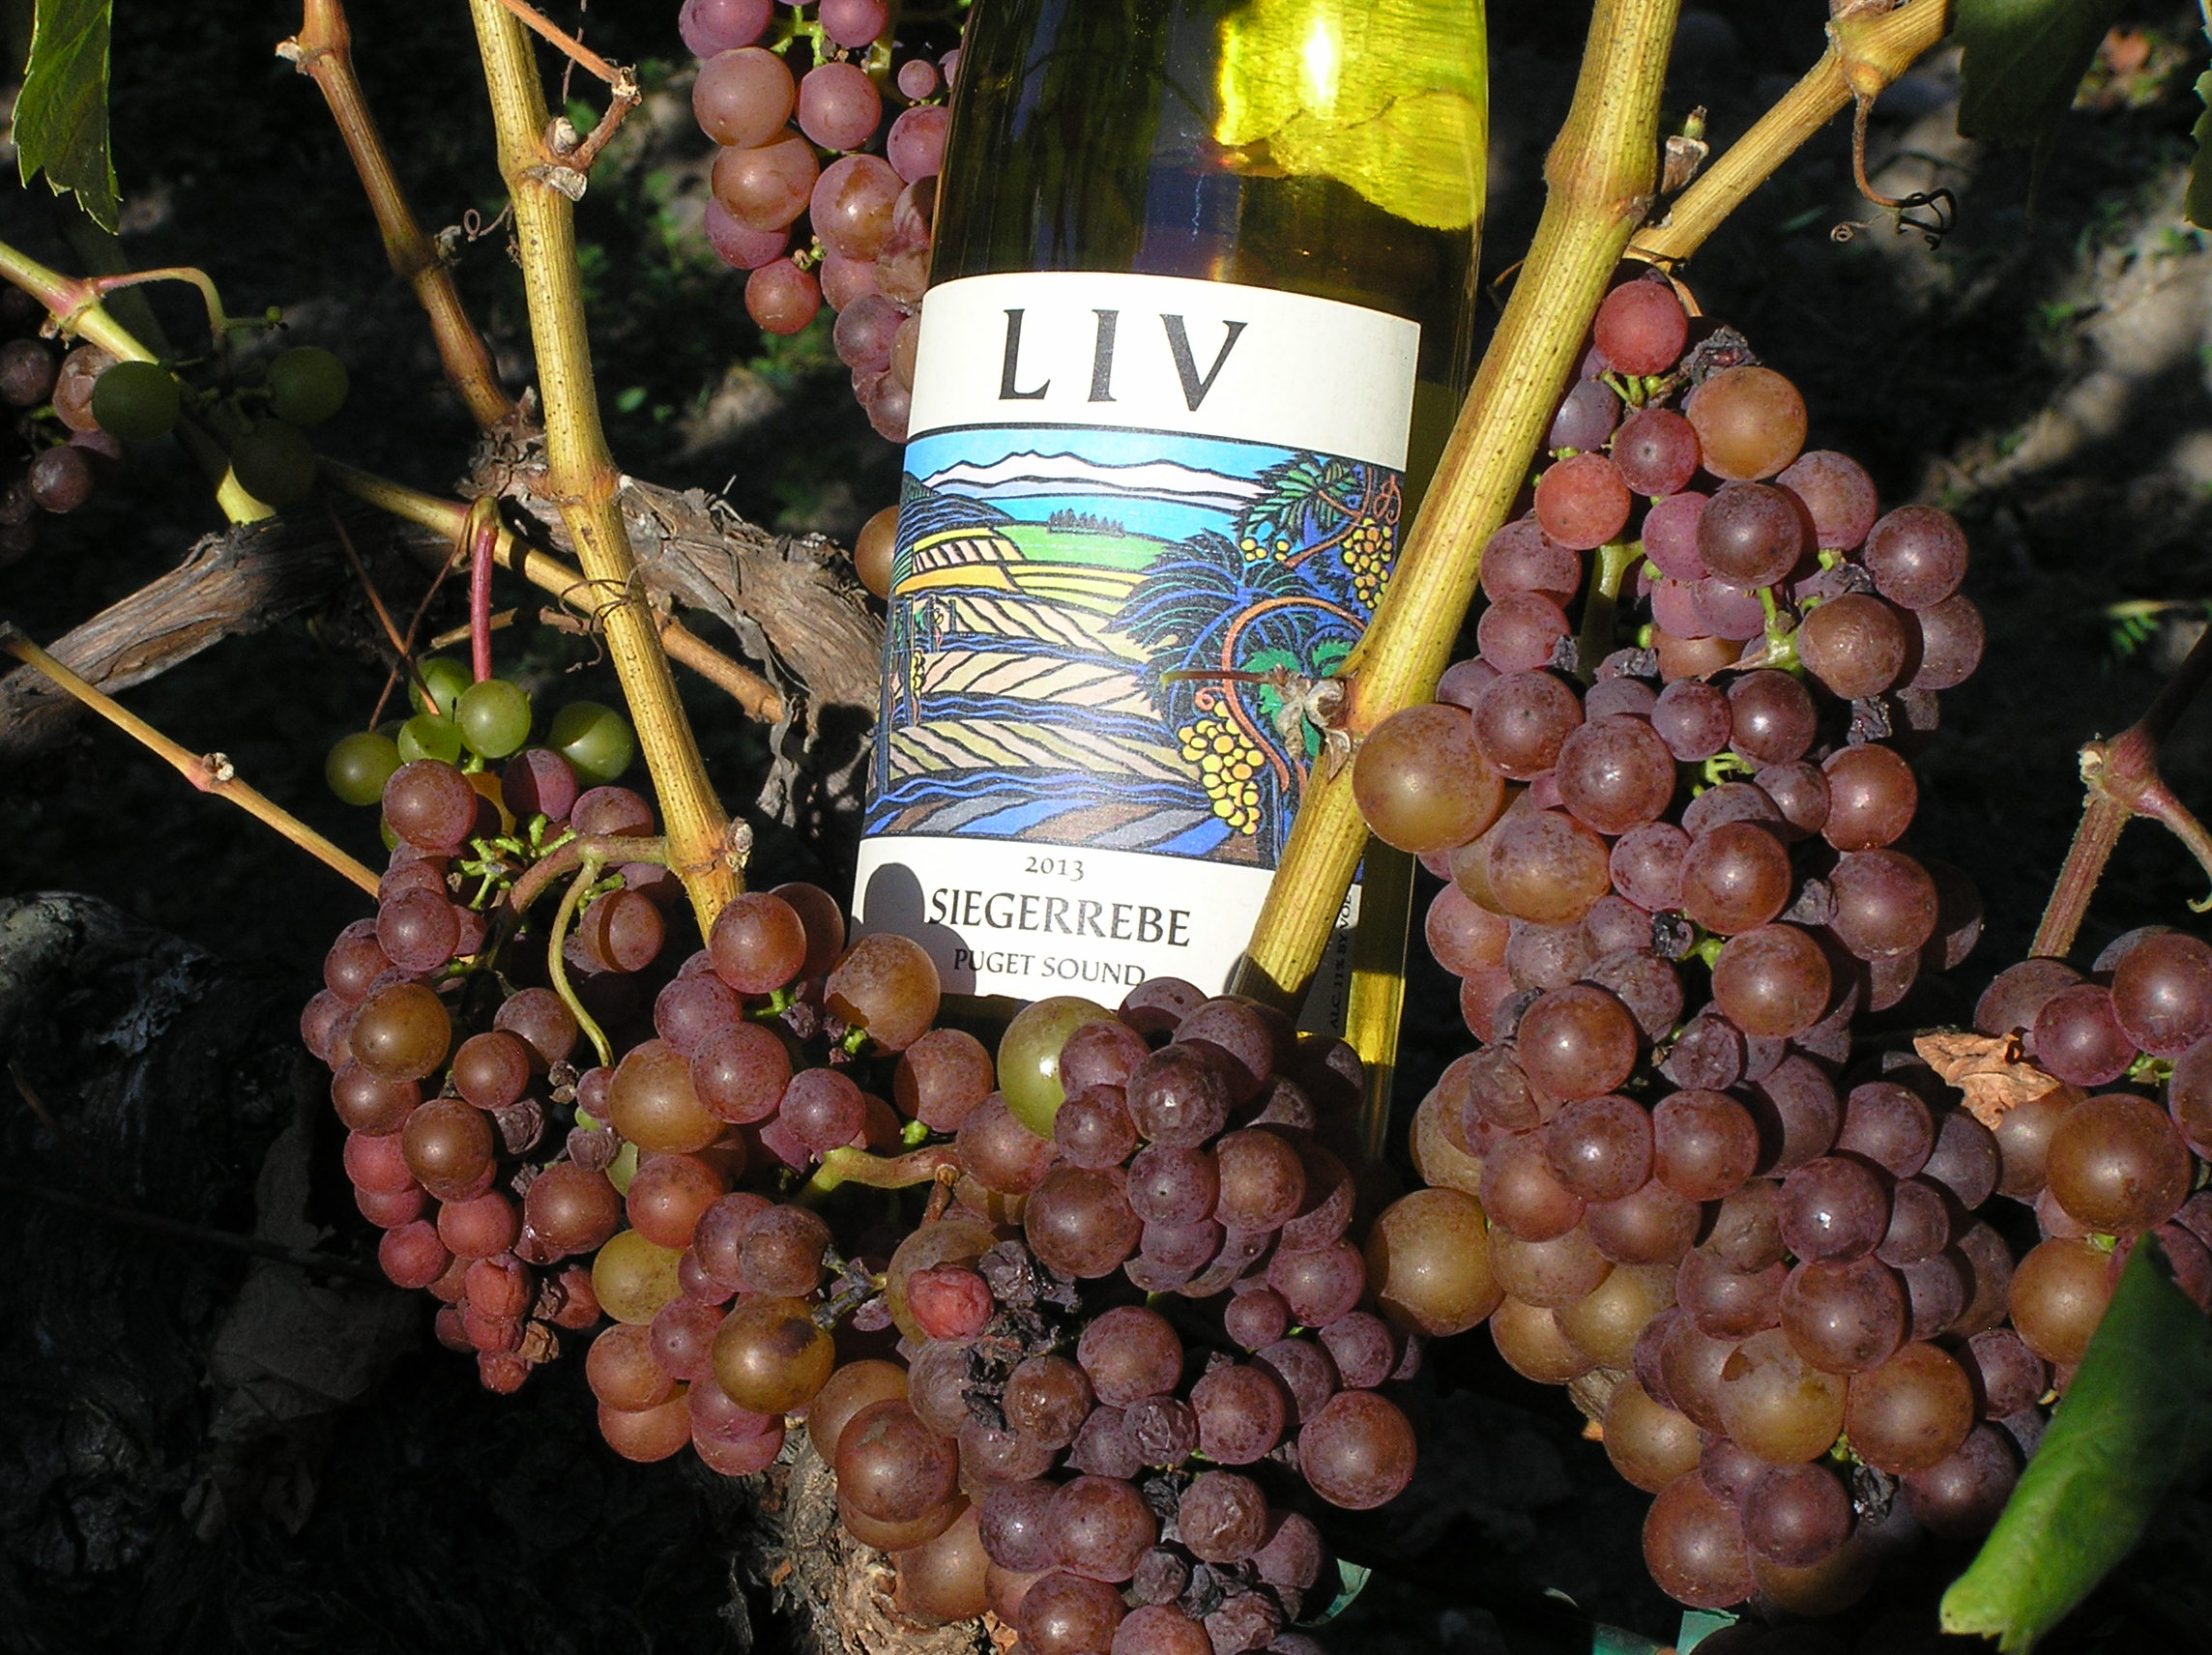 Siegerrebe wine nestled in siegerrebe grapes at LIV (Lopez Island Vineyards). Photo courtesy LIV.